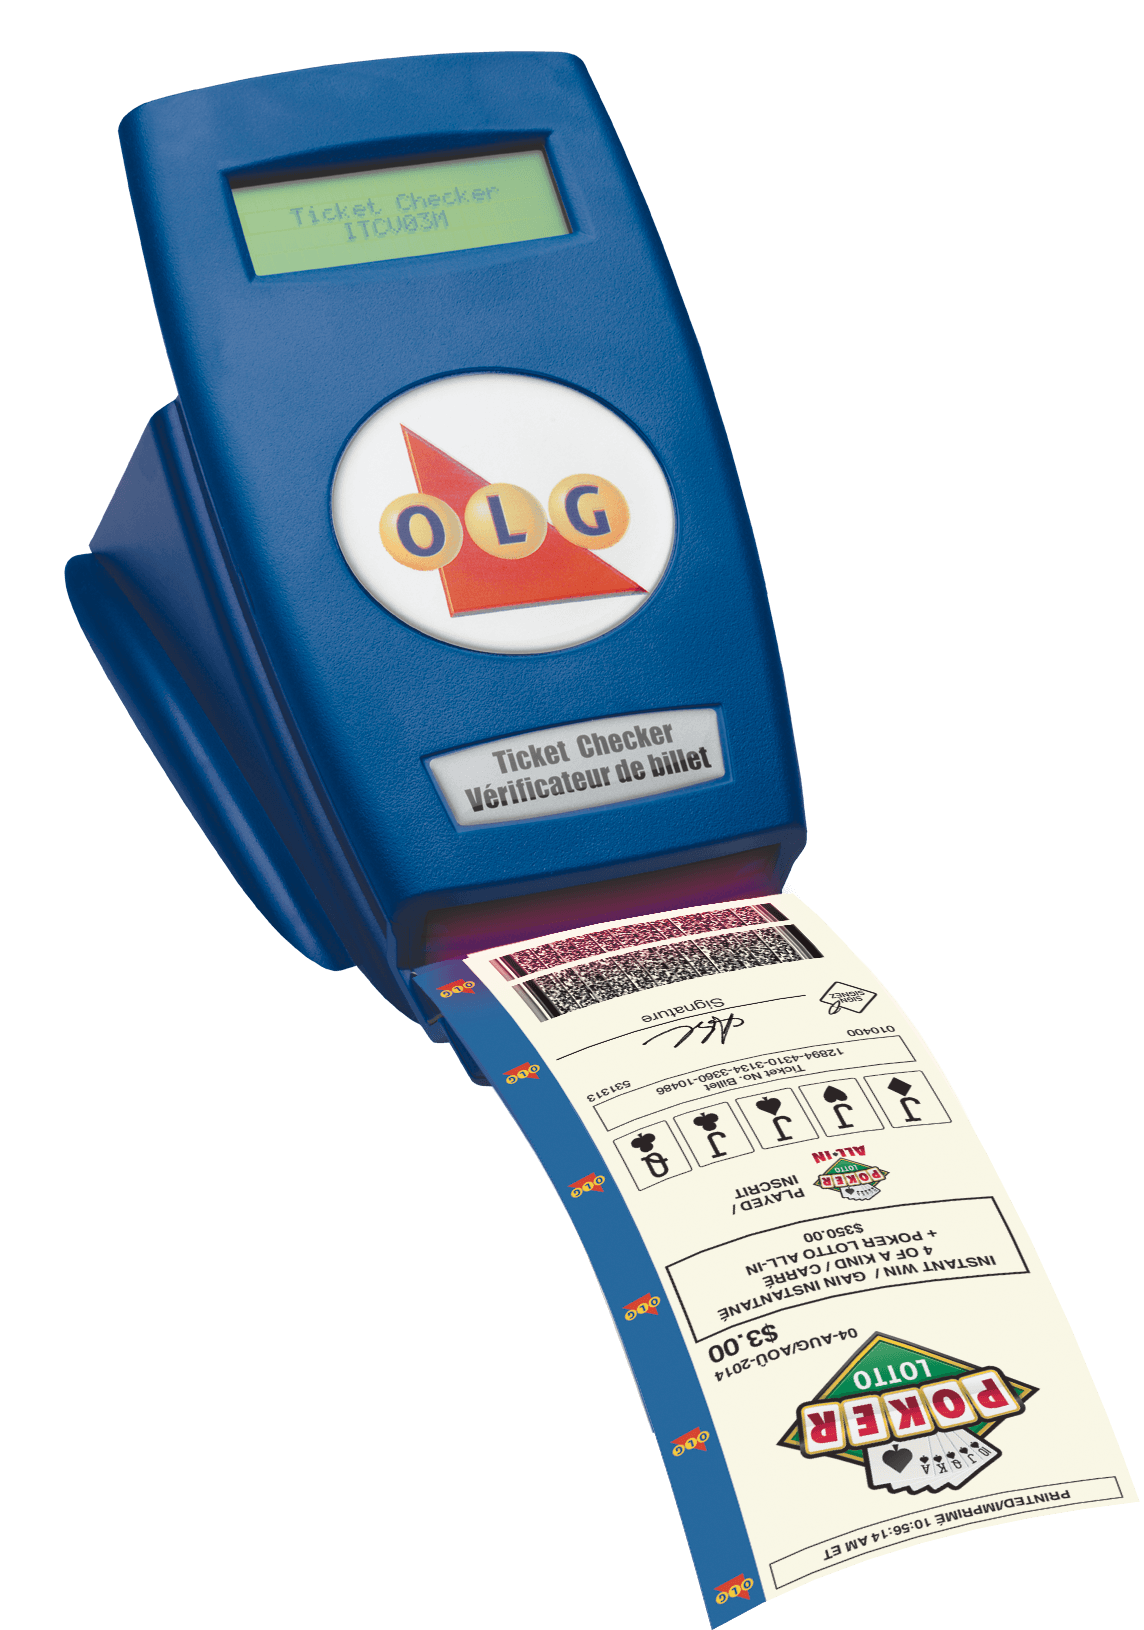 OLG ticket checker